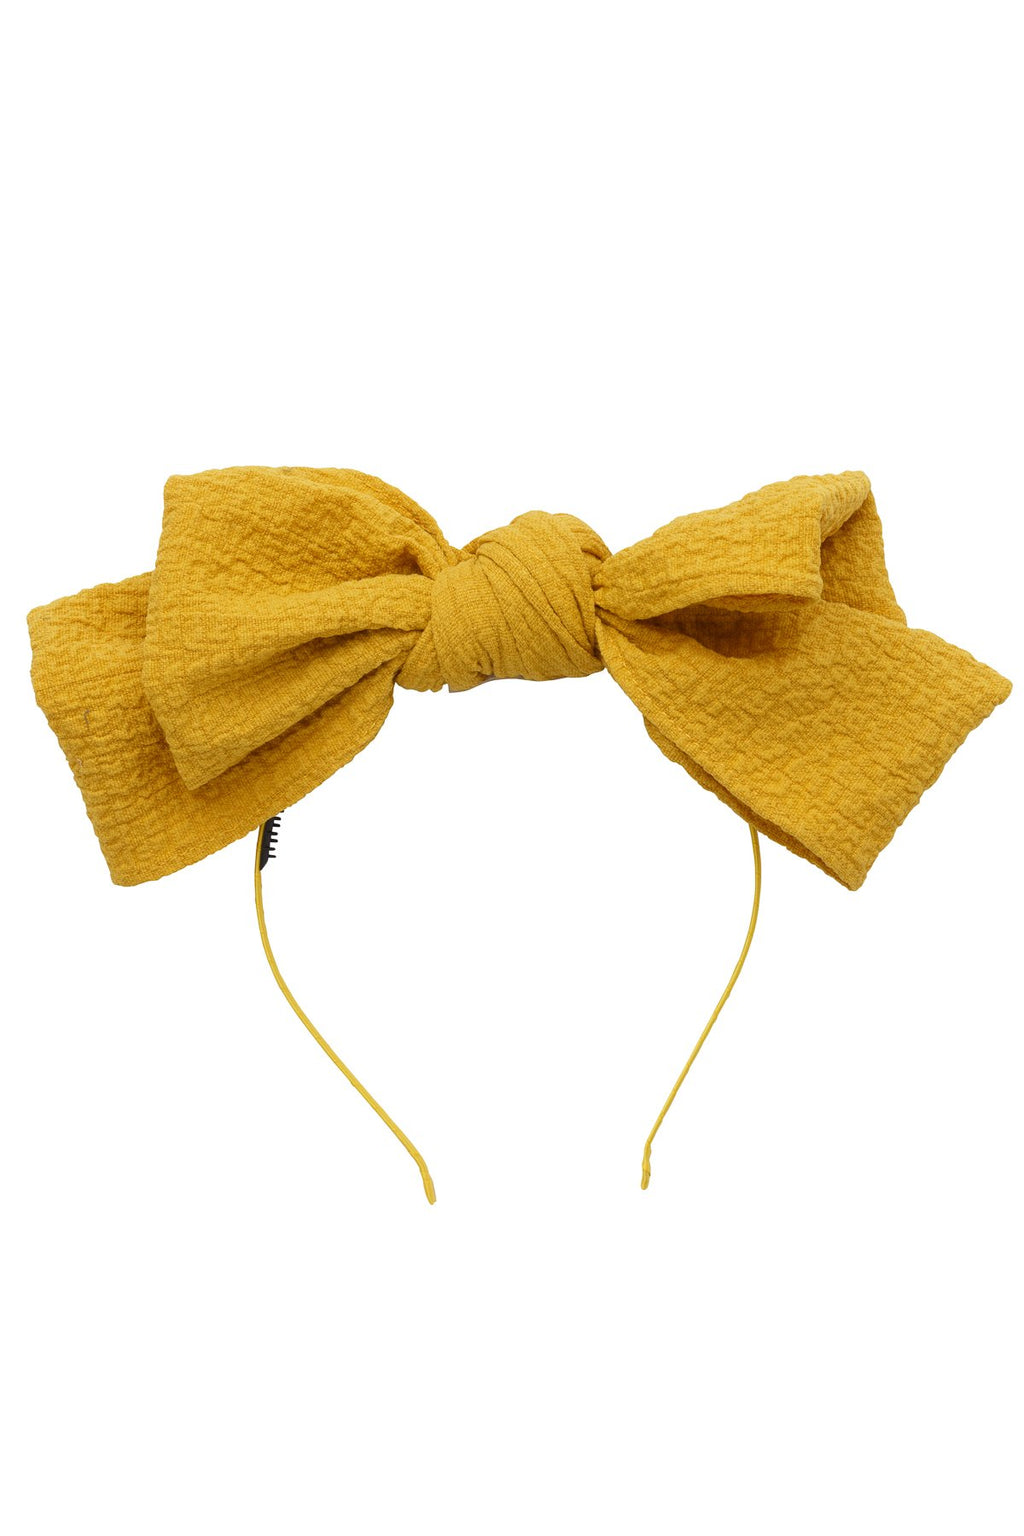 Floppy Muslin Headband - Mustard - PROJECT 6, modest fashion